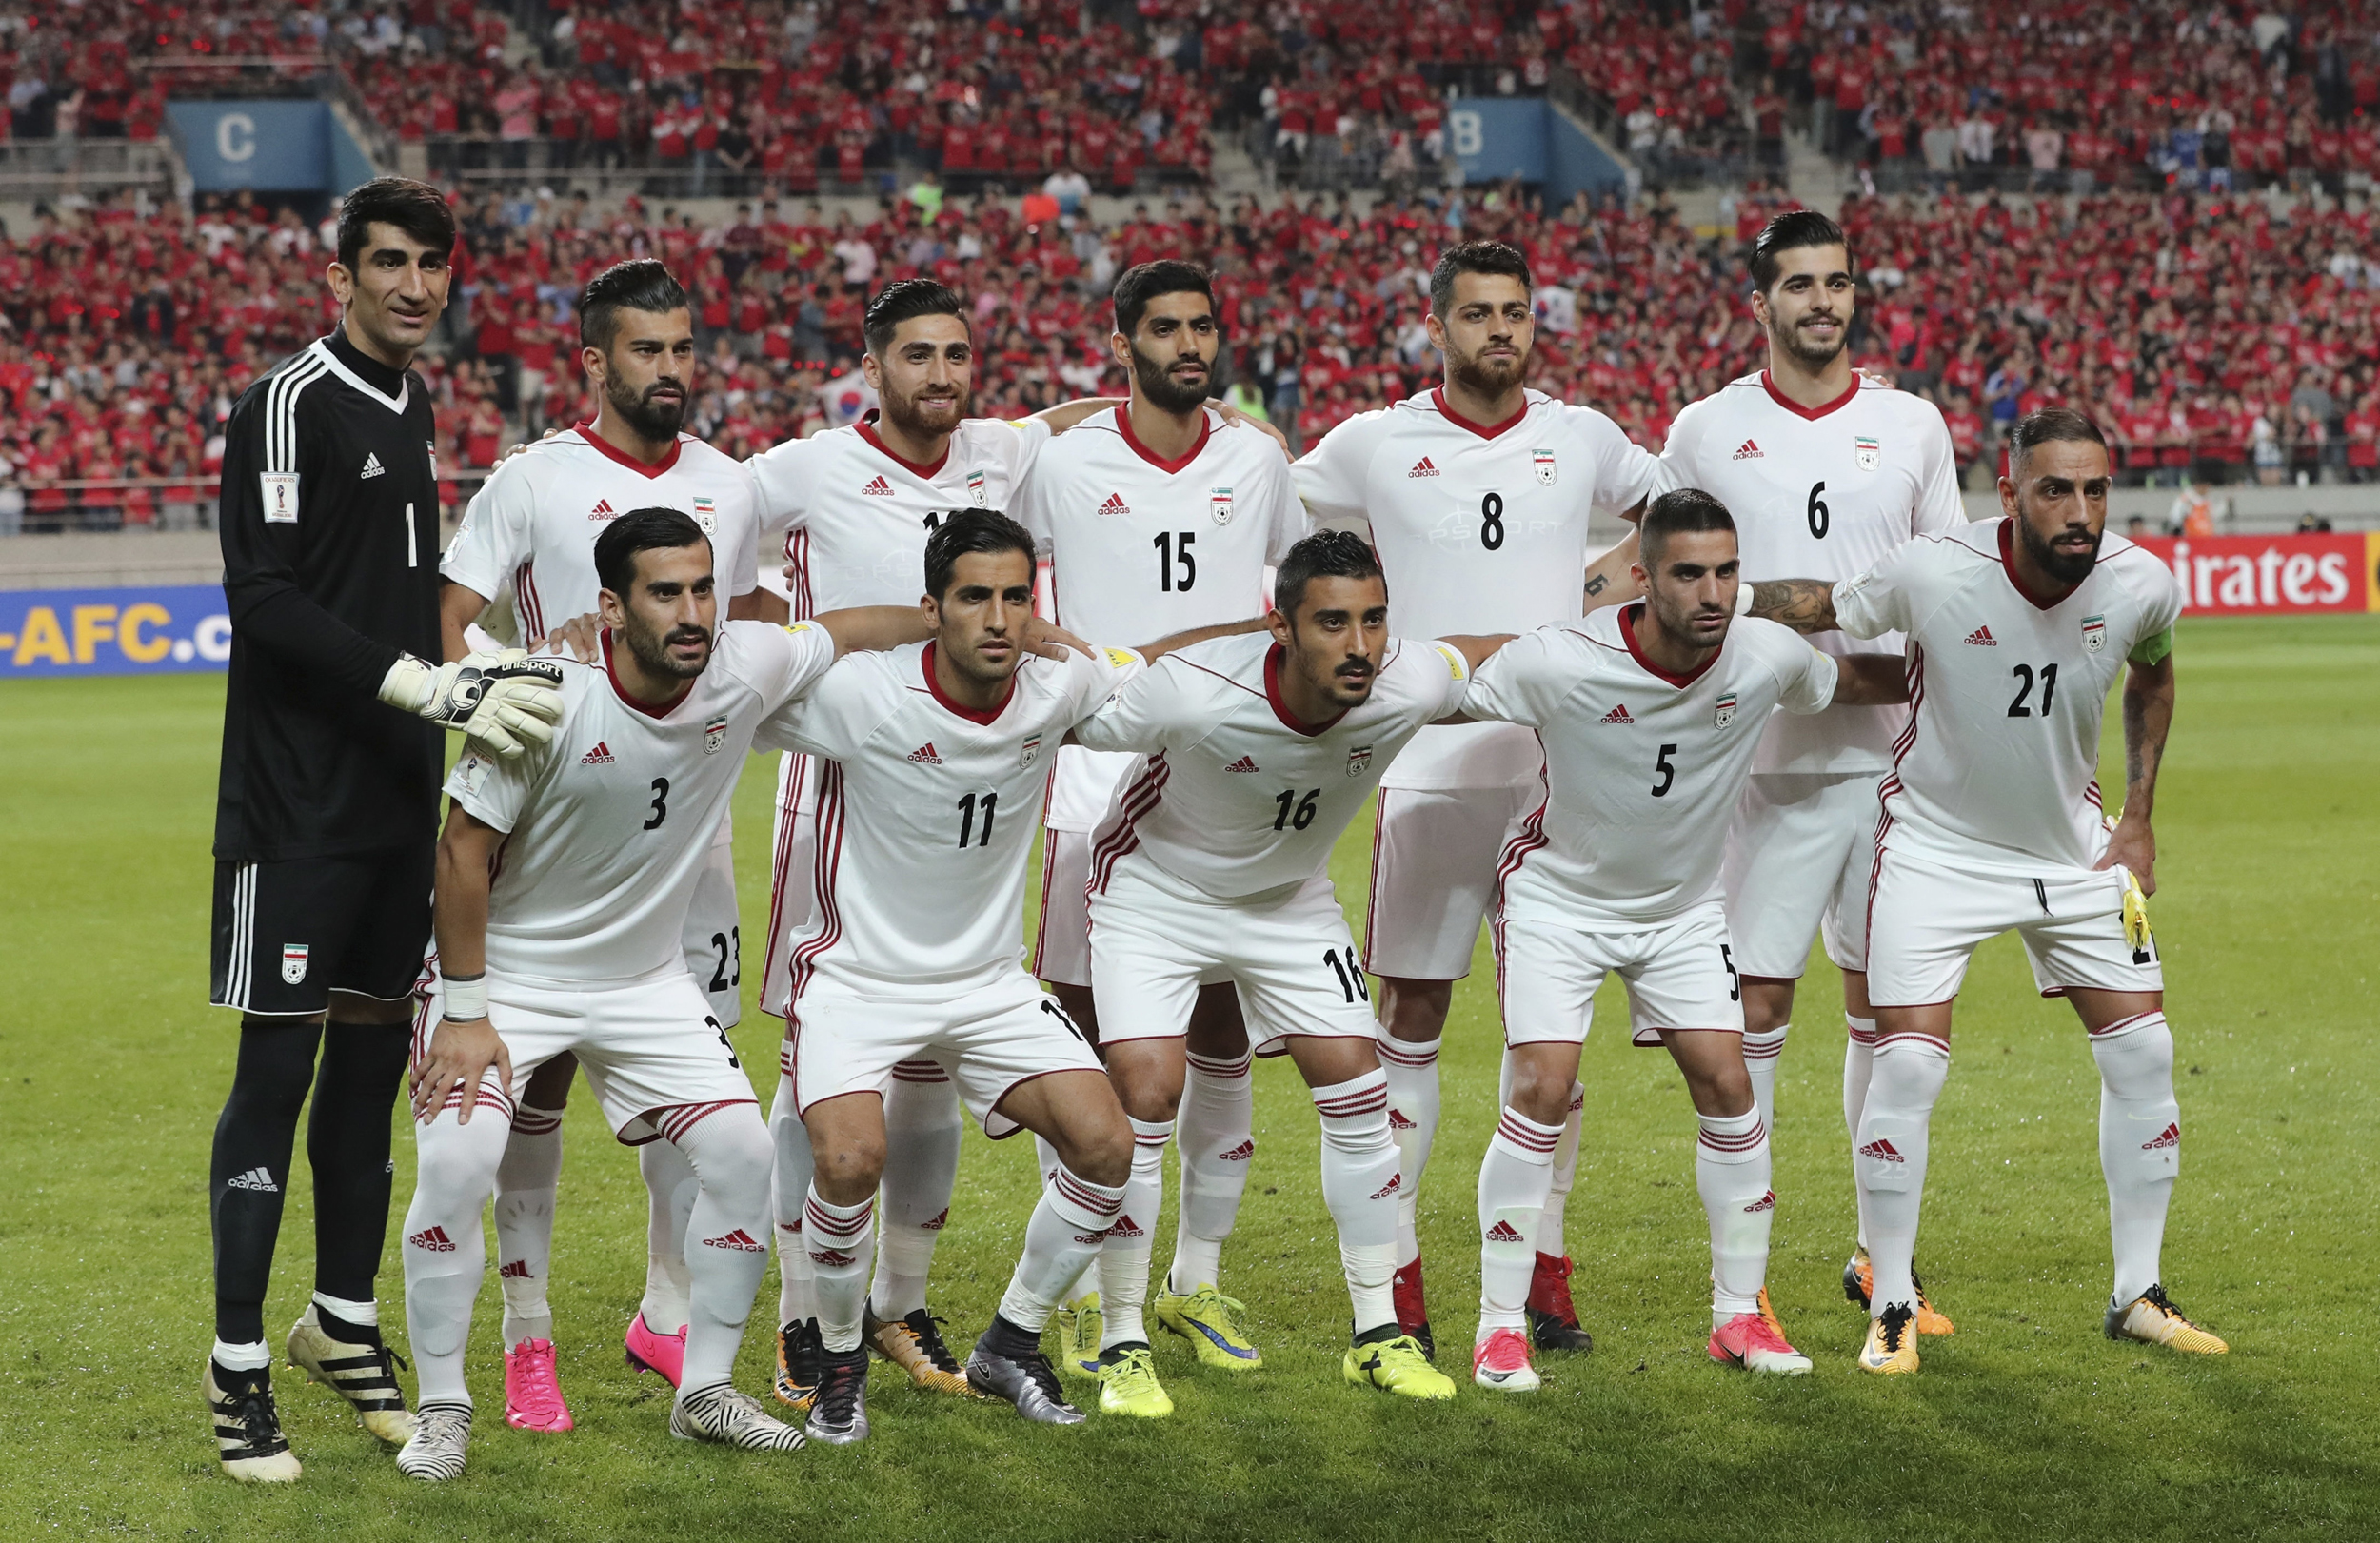 1d81b4f46 Nike cuts ties with Iran's World Cup team, citing U.S. sanctions